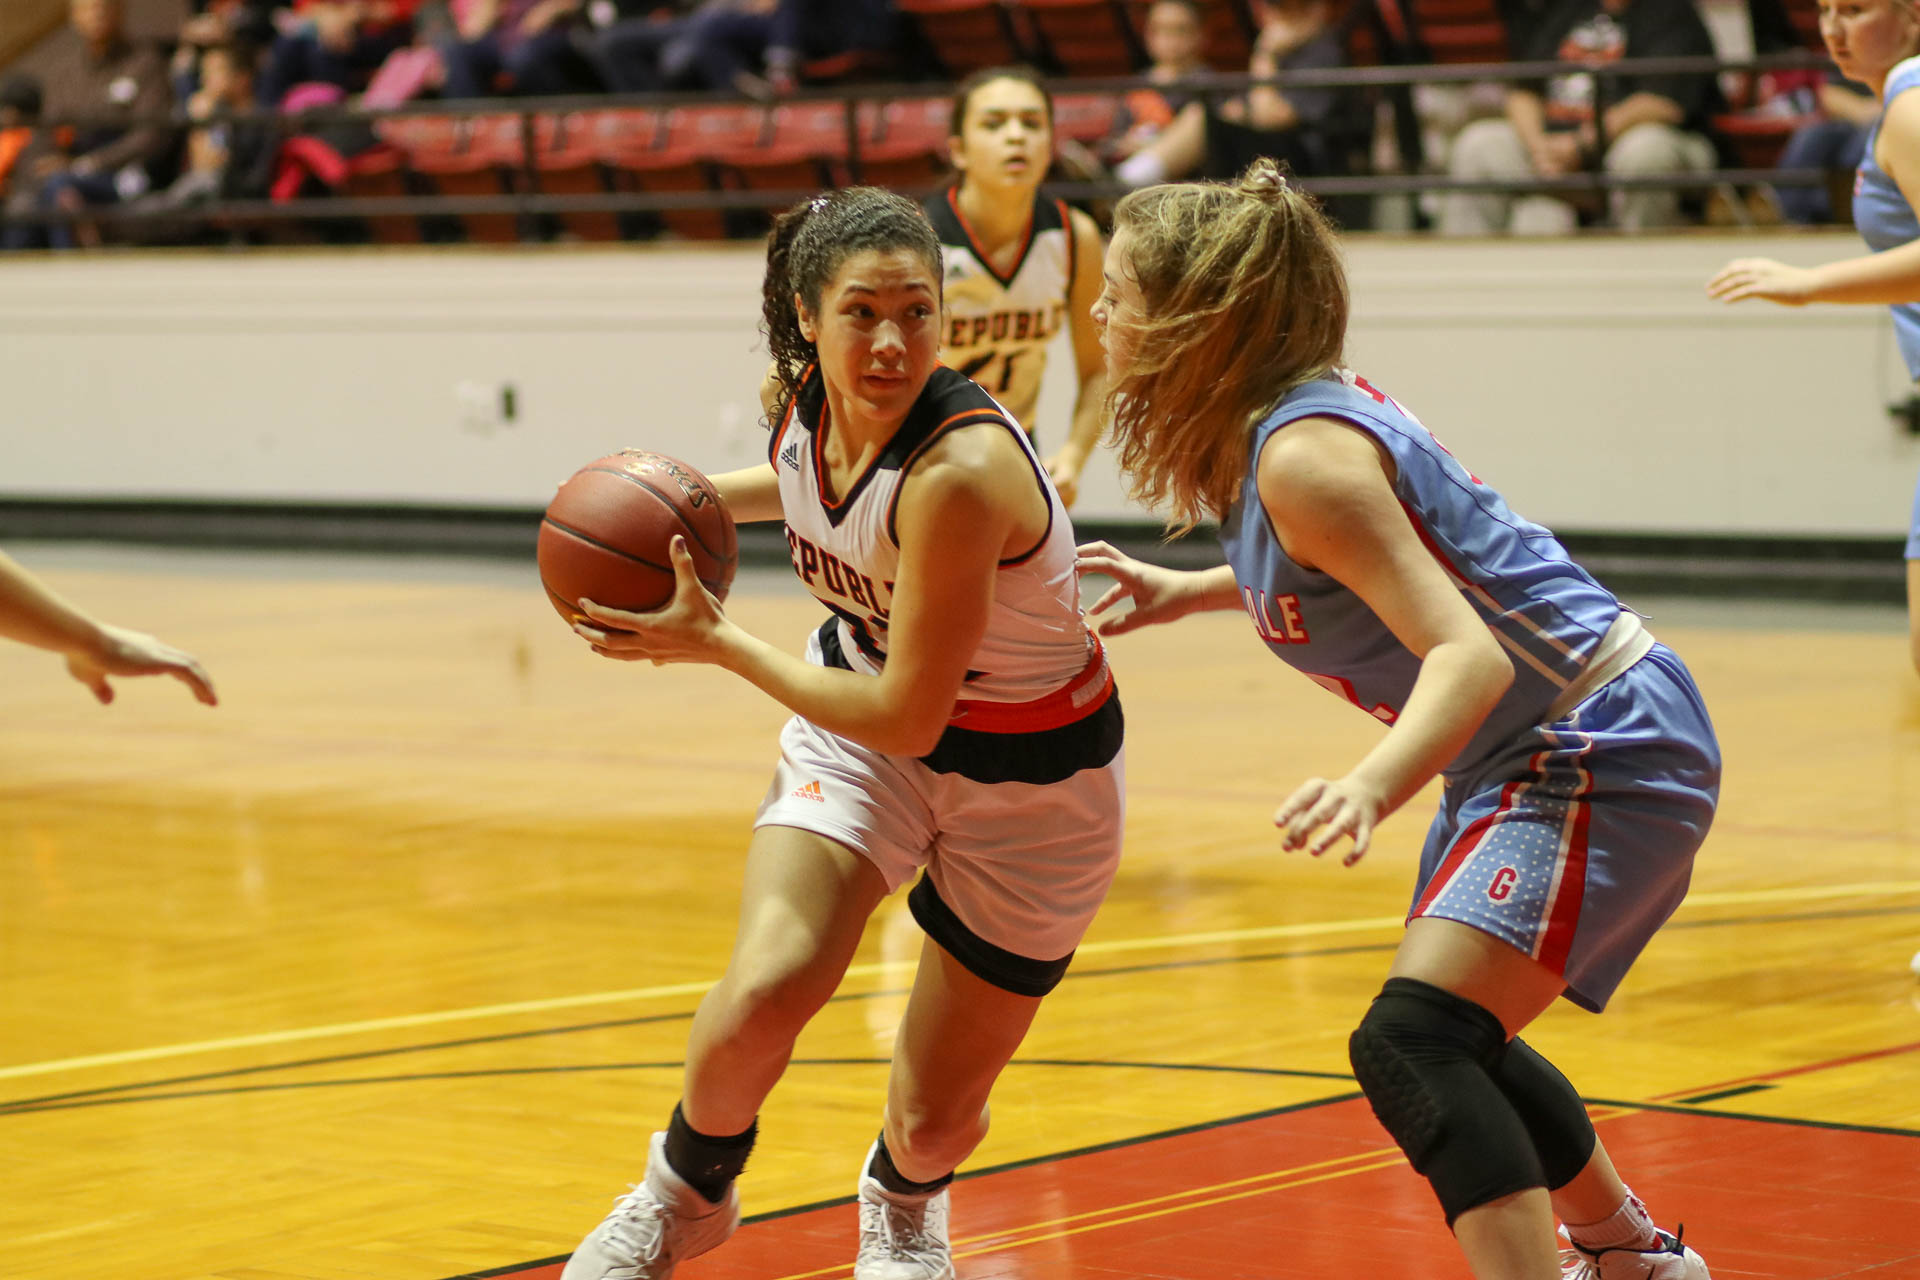 Lady Tigers Tip Off Tourney With Win